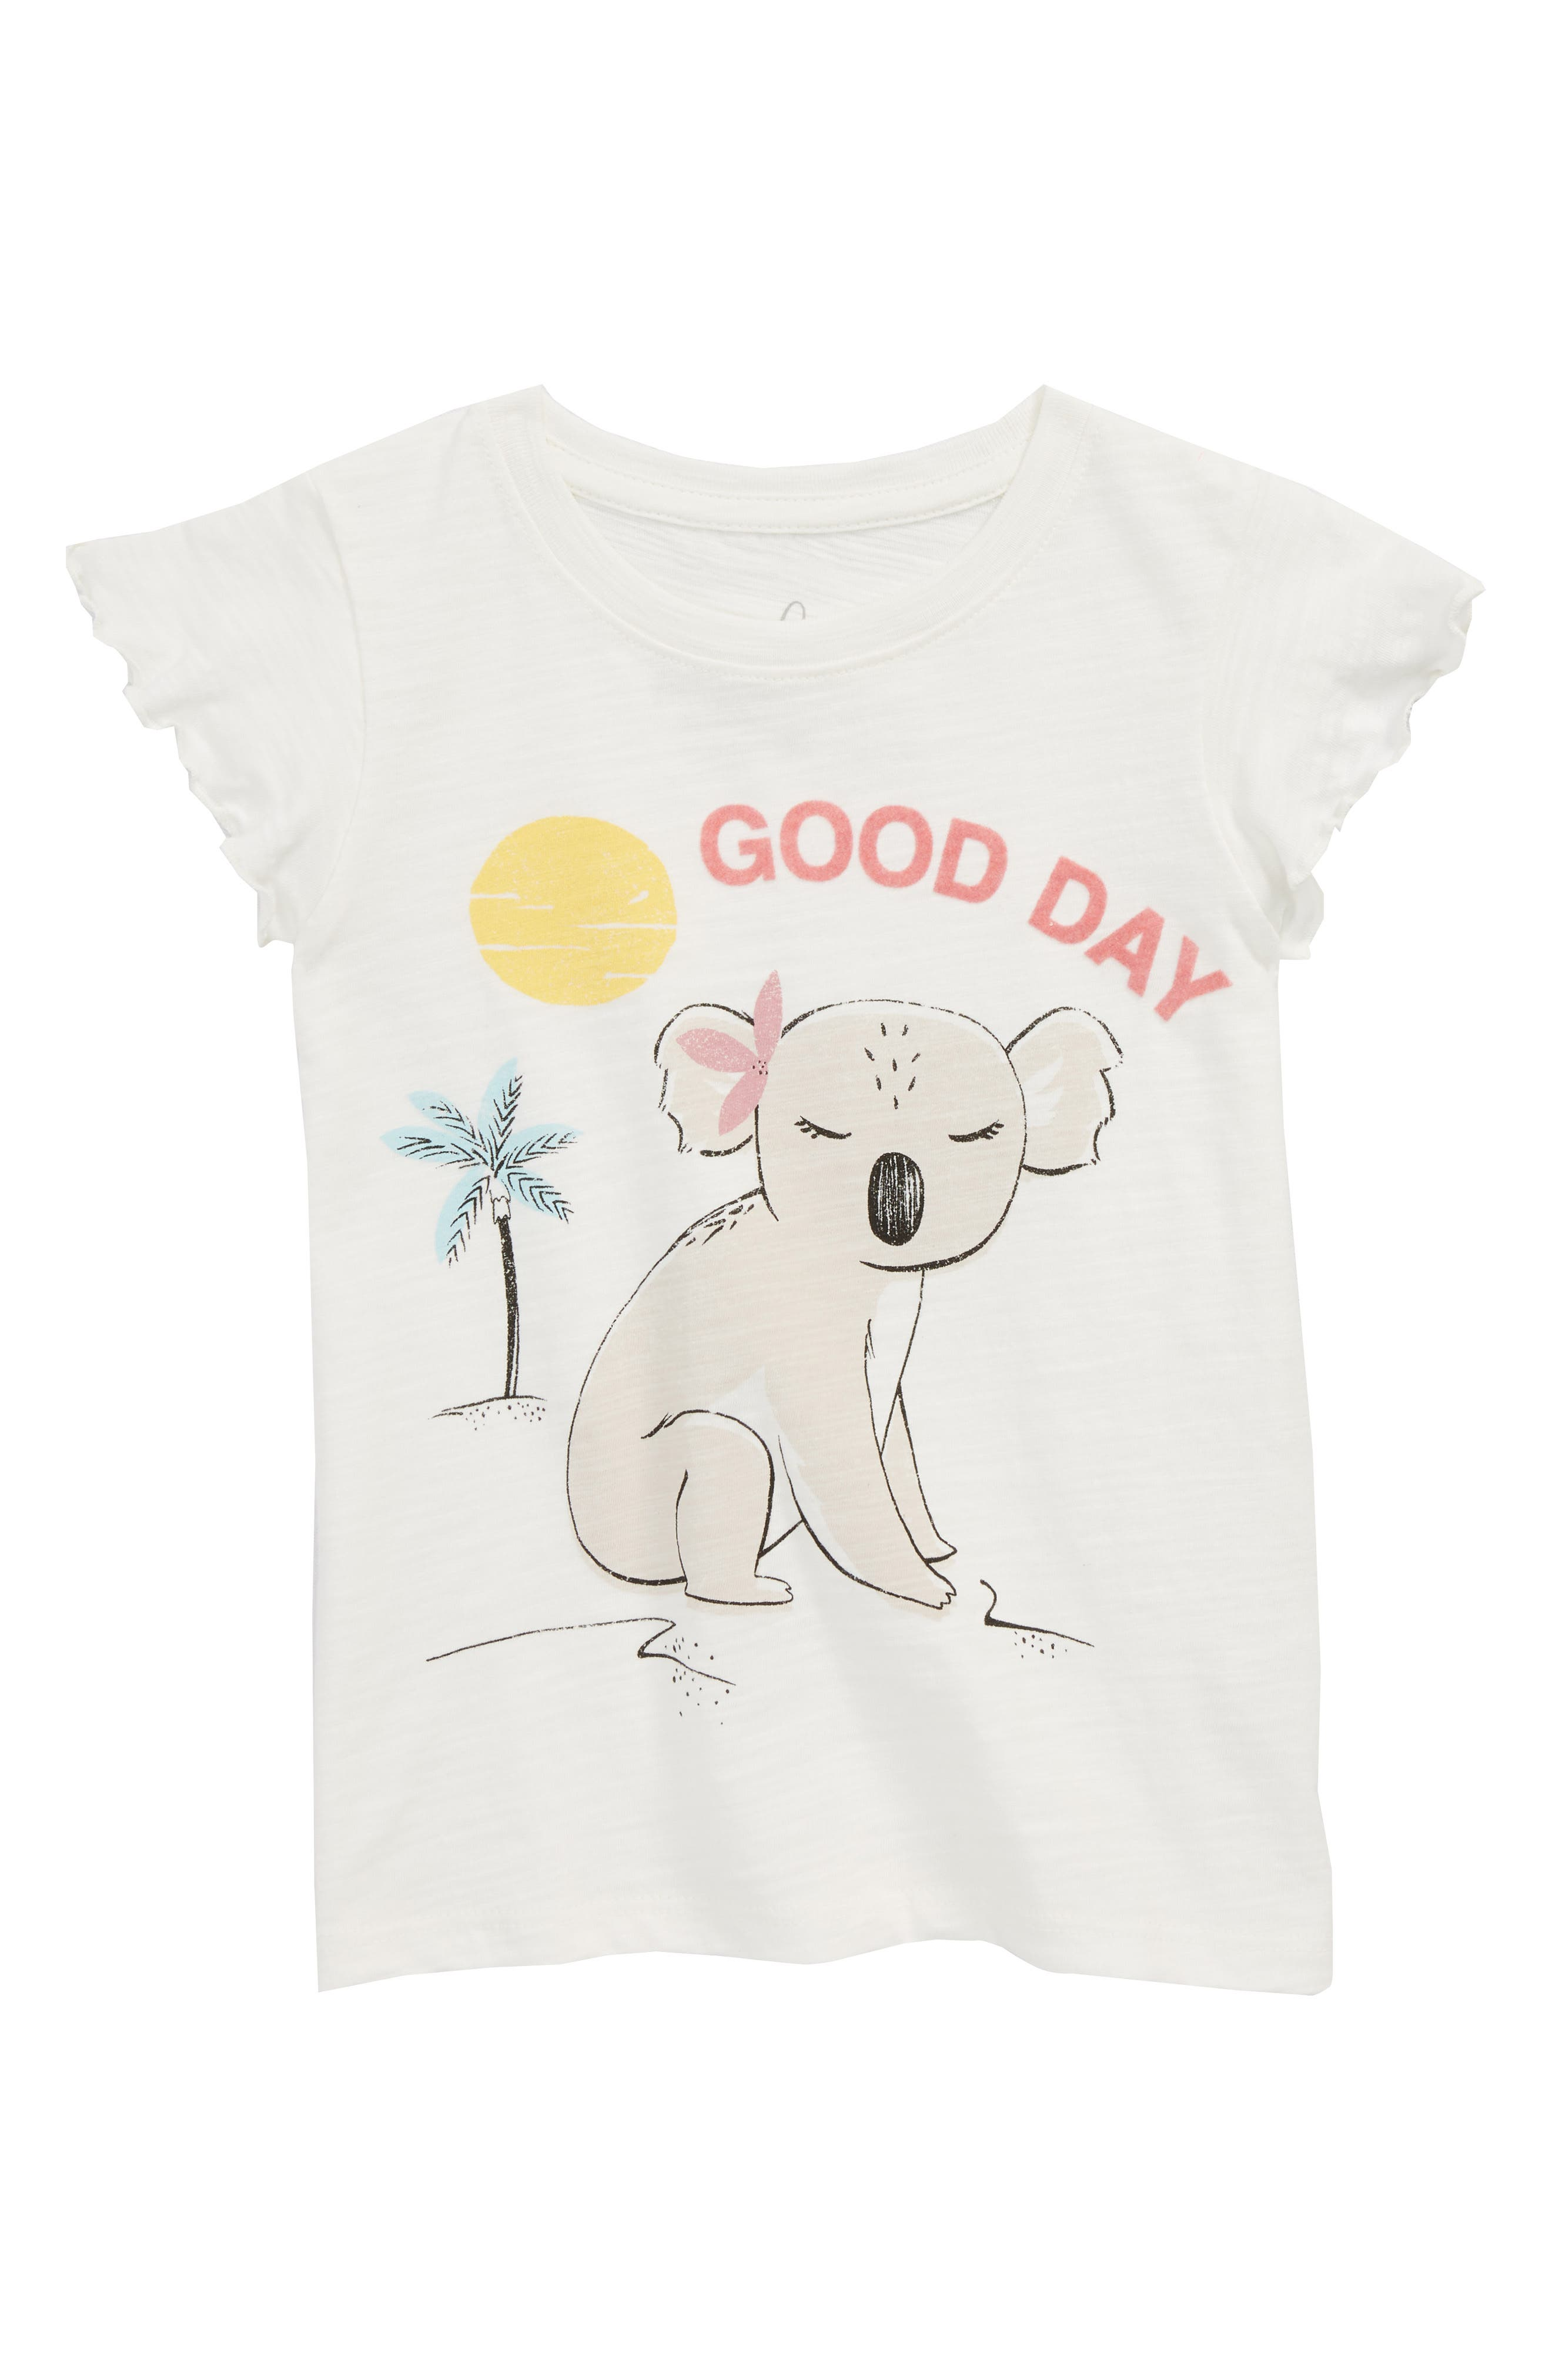 Koala Tee,                             Main thumbnail 1, color,                             900